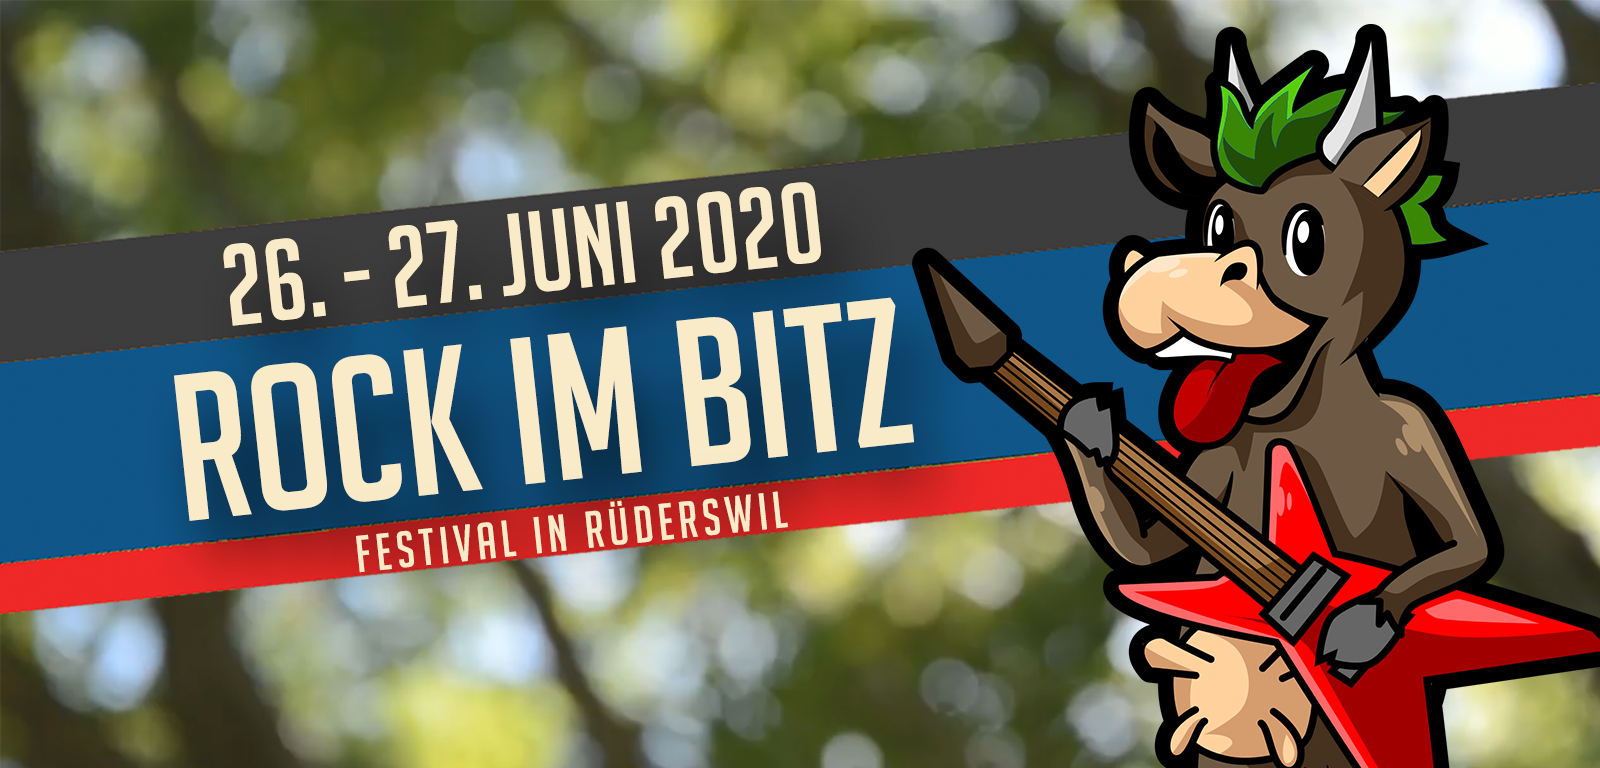 Rock im BItz Header 2020